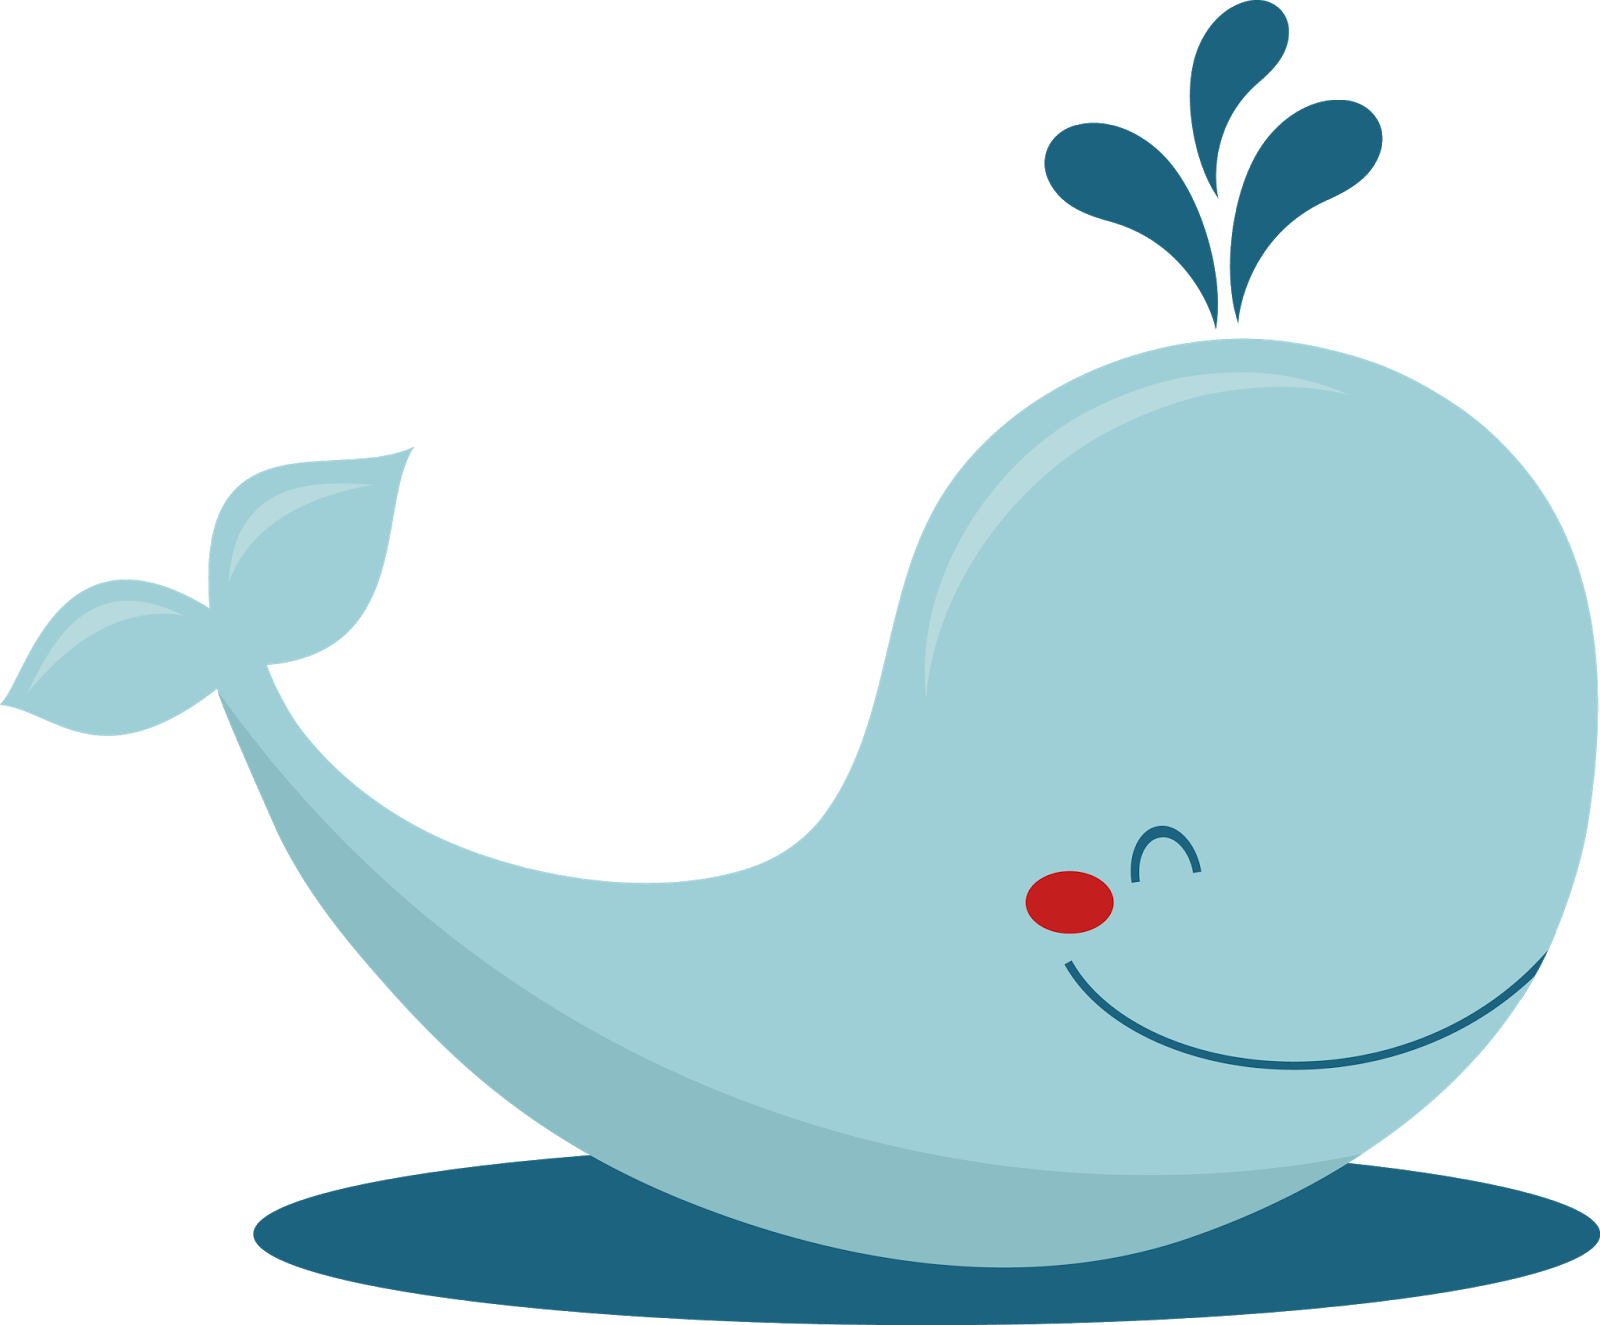 Whale clip art pictures free clipart images